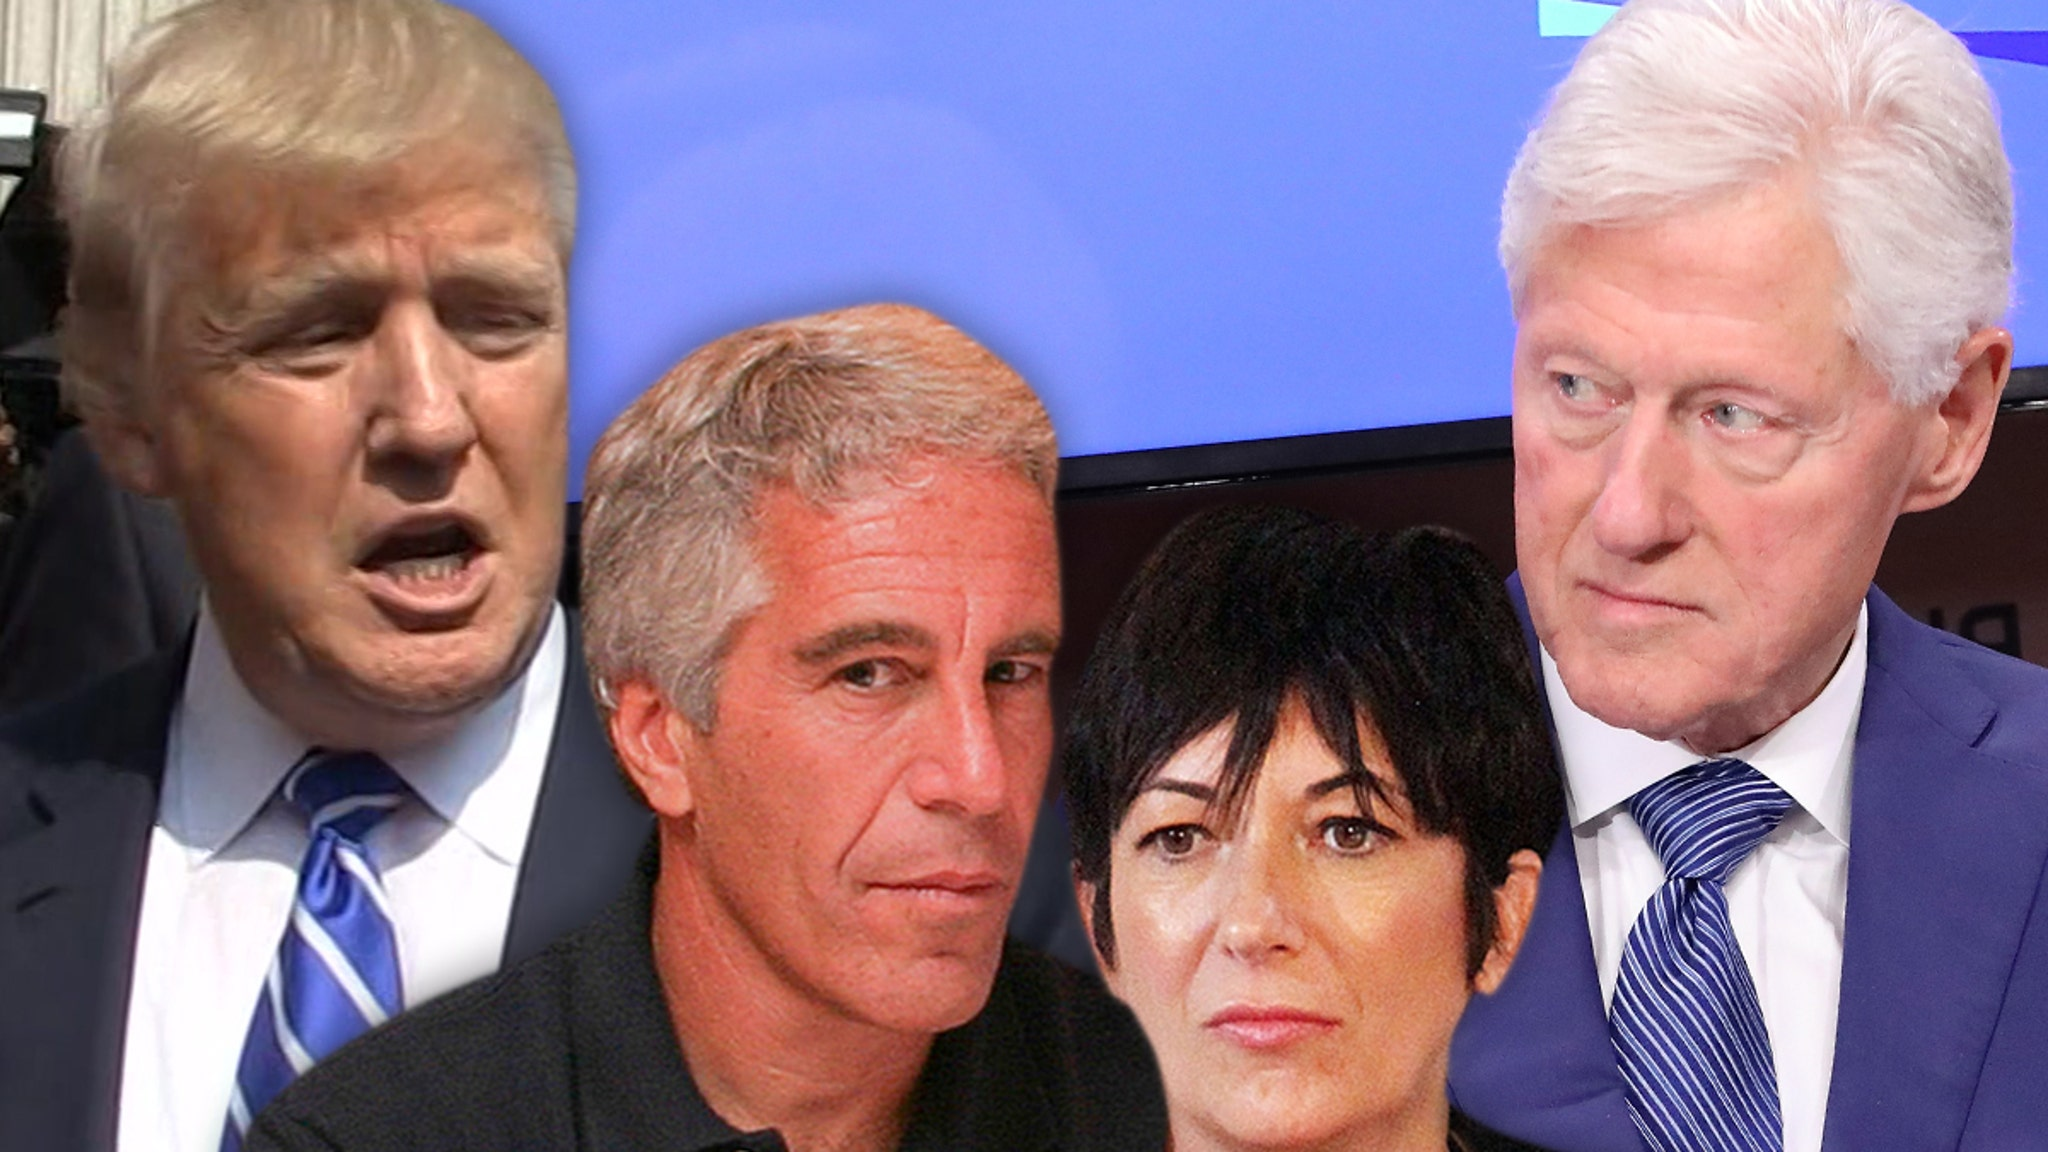 Ghislaine Maxwell Allegedly Revealed Epstein Had Secret Tapes on Trump, Clinton